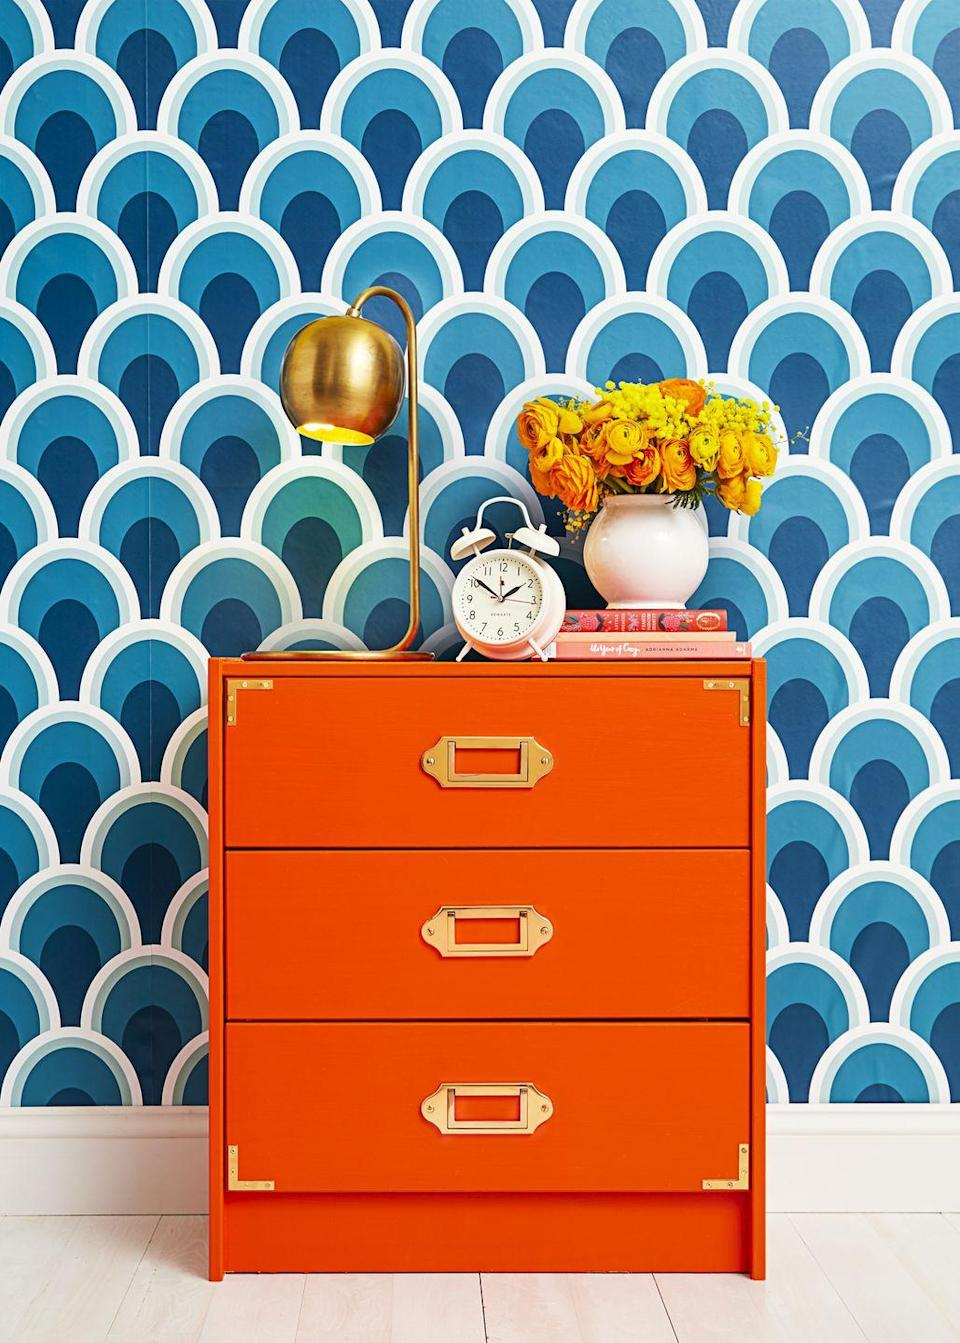 "<p>Paint one piece of furniture an unexpected color. This vibrant orange dresser looks way more expensive than its IKEA origins thanks to new paint and hardware. </p><p><a href=""https://www.goodhousekeeping.com/home/decorating-ideas/a47625/diy-rope-star-mirror/"" rel=""nofollow noopener"" target=""_blank"" data-ylk=""slk:RELATED: This Simple Mirror DIY Will Upgrade Any Boring Wall in Your Home"" class=""link rapid-noclick-resp""><strong>RELATED:</strong> This Simple Mirror DIY Will Upgrade Any Boring Wall in Your Home</a></p>"